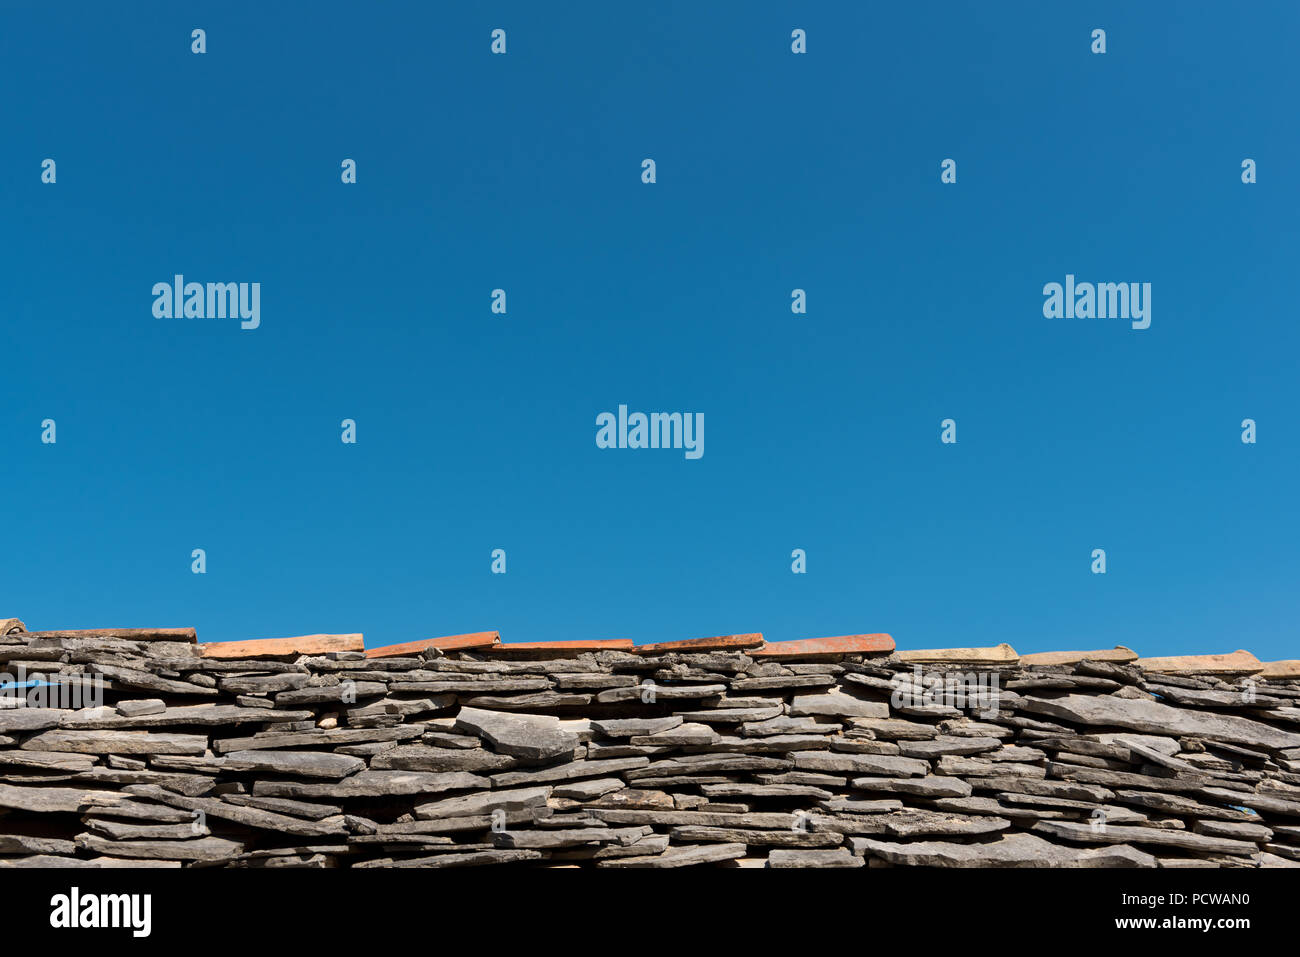 Old roof with grey stone tiles and clear blue sky in background - Stock Image